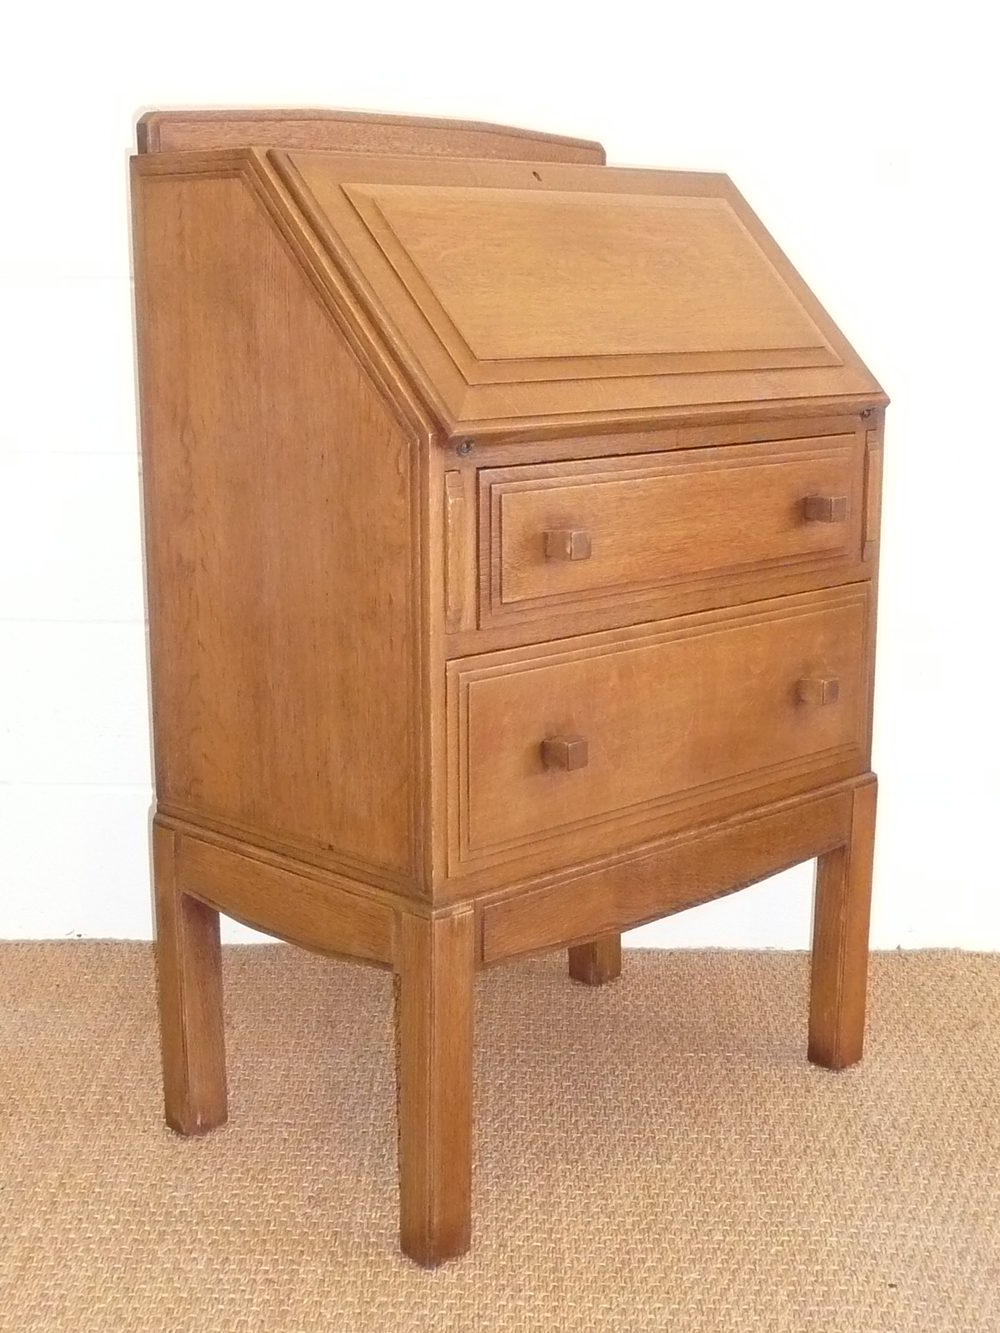 brynmawr arts crafts oak bureau antiques atlas. Black Bedroom Furniture Sets. Home Design Ideas